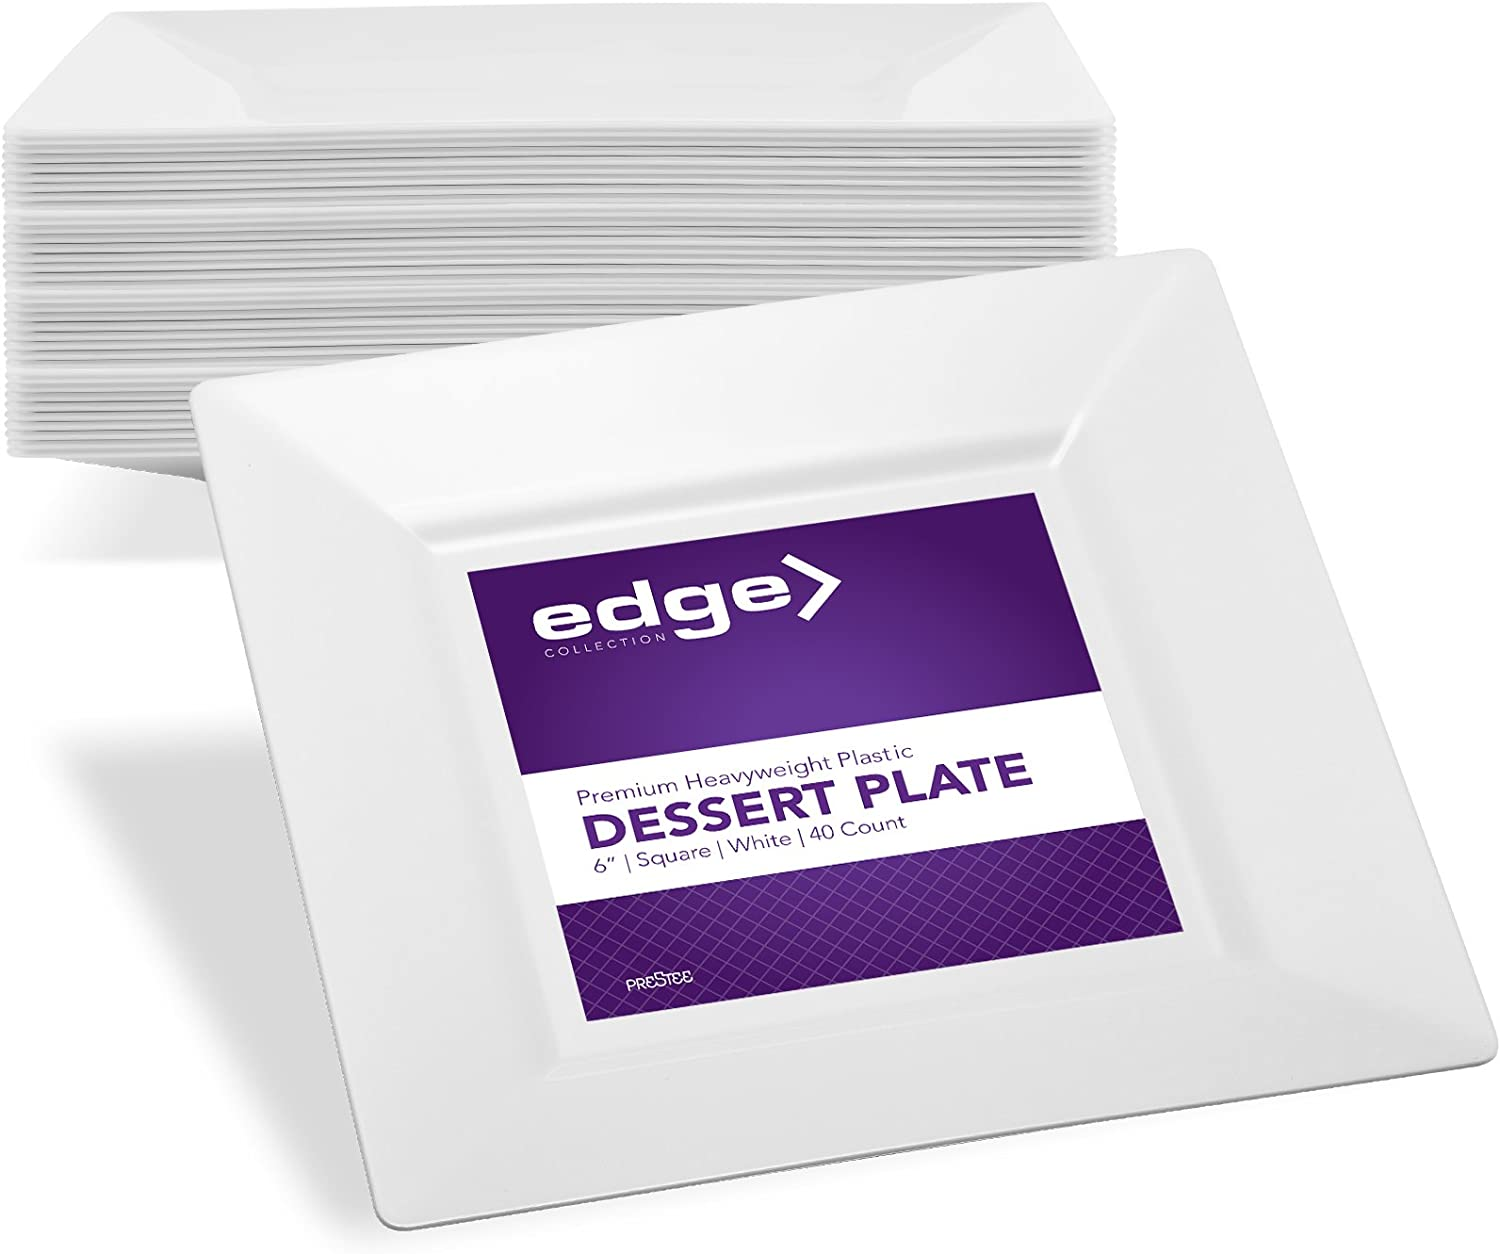 Edge Plates For Parties 6 Inch White Disposable Plastic Party Dessert Plates 40 Ct Hard Square Elegant Fancy Heavy Duty Party Supplies Plates Bridal Holiday Wedding Plates Serving Bowls